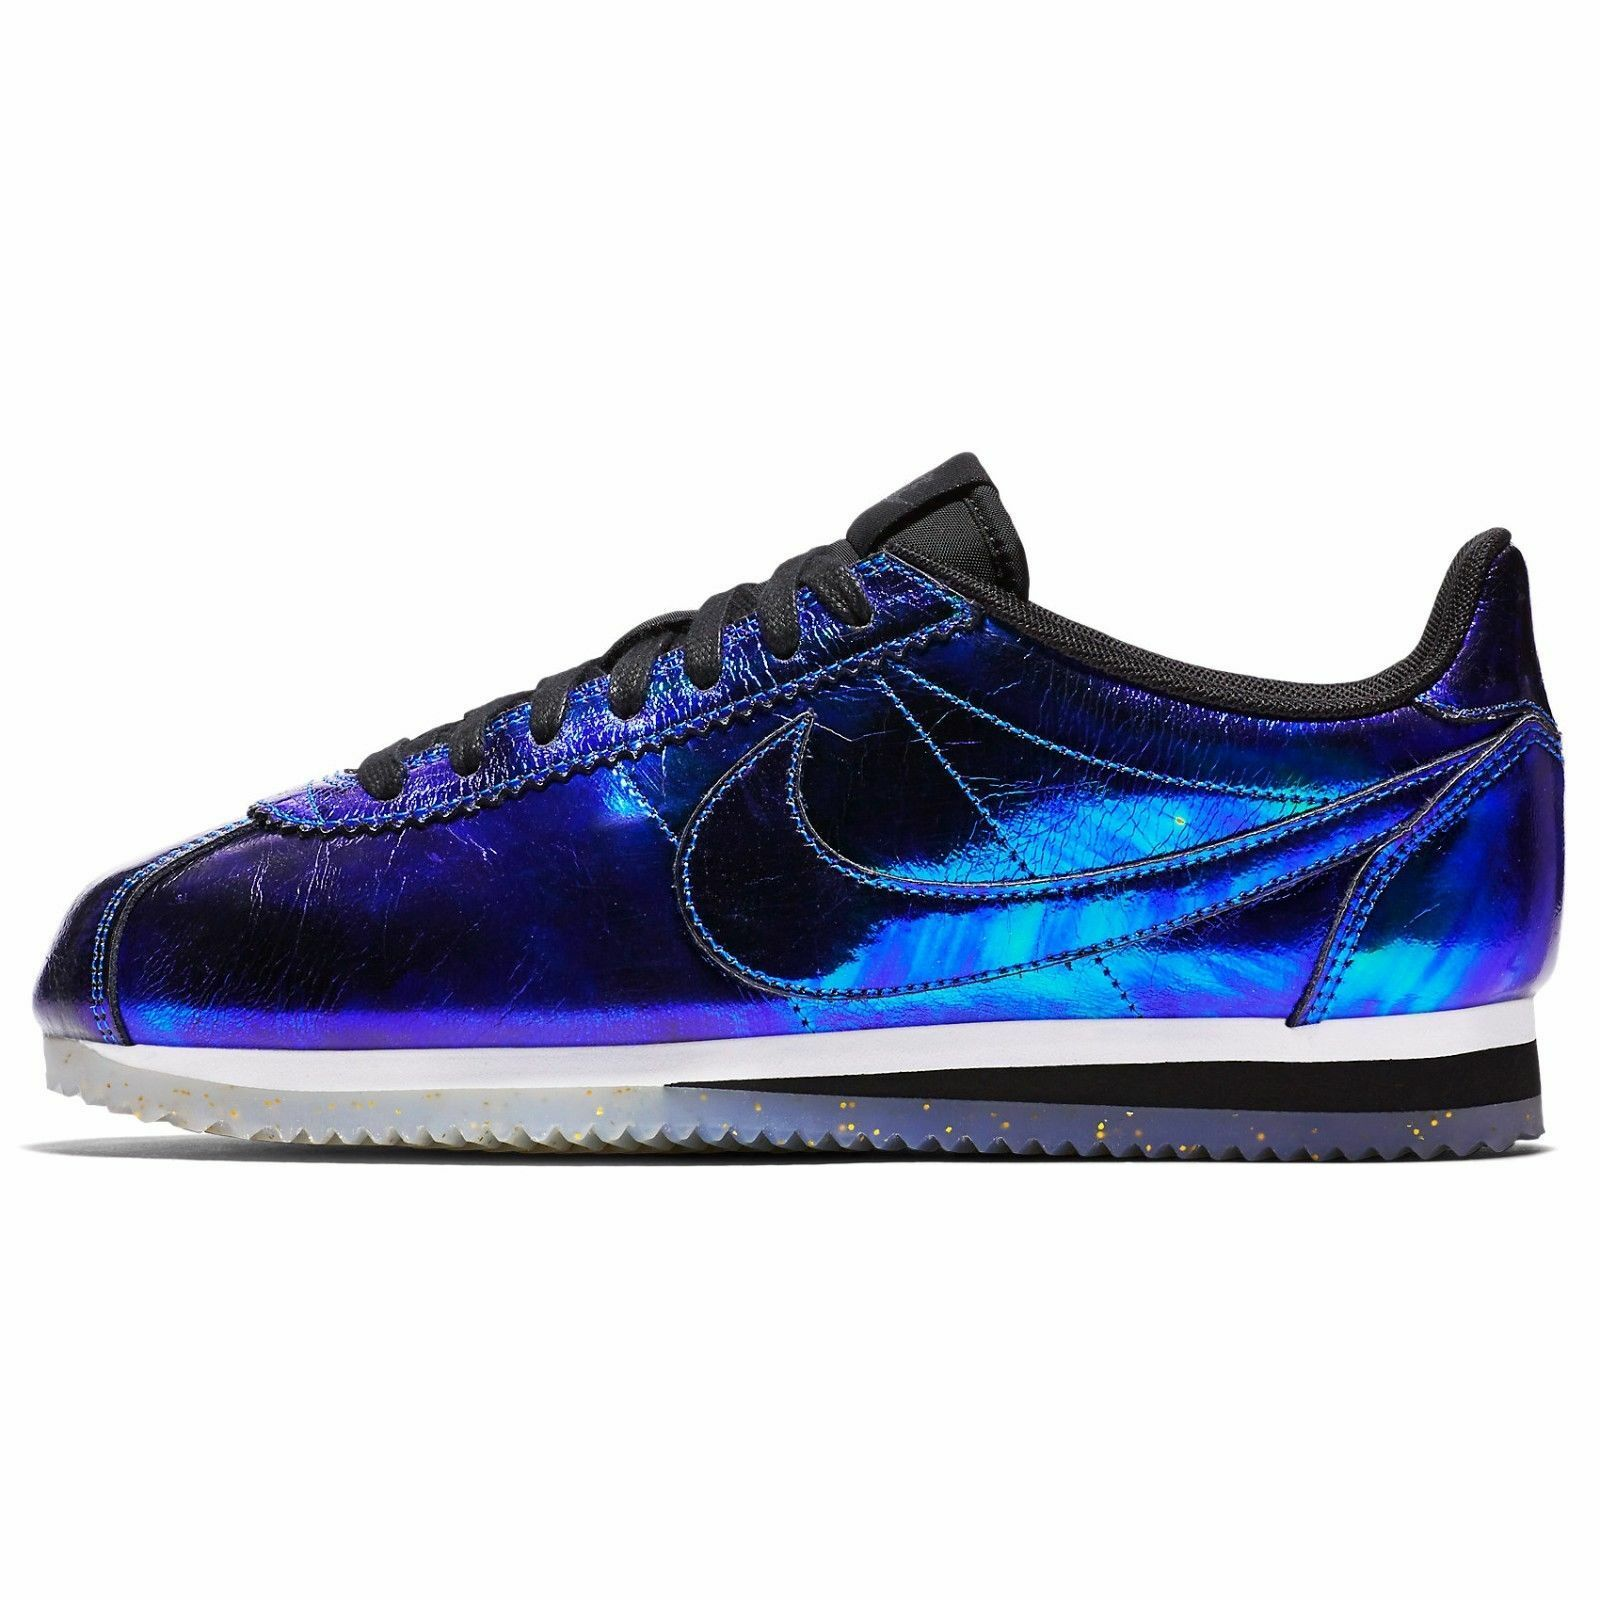 Nike Cortez Classic Leather SE Iridescent Soar White Black 902854-400 Wmn Sz 7 The latest discount shoes for men and women